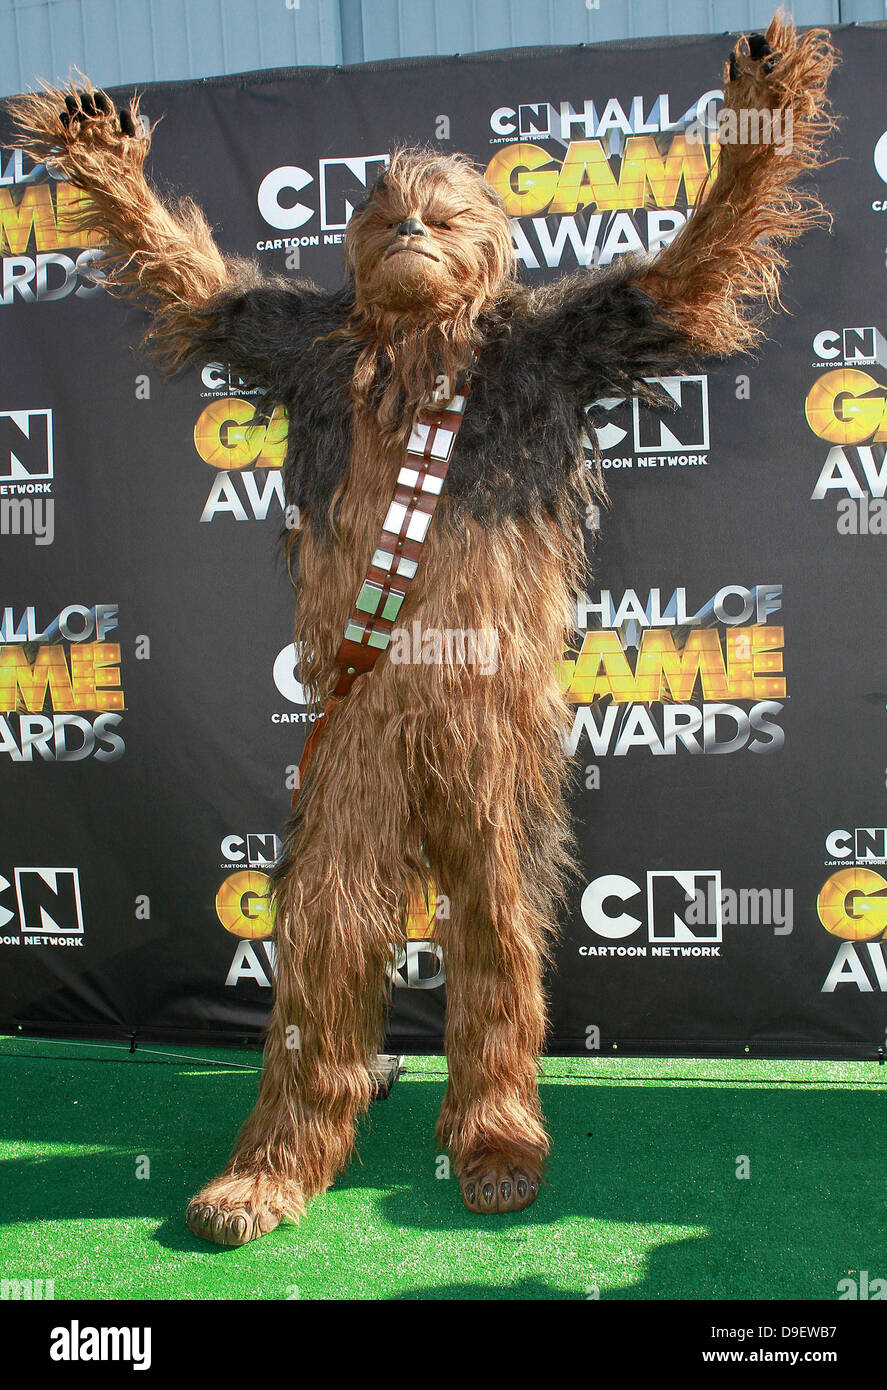 chewbacca from star wars cartoon network hall of game awards held